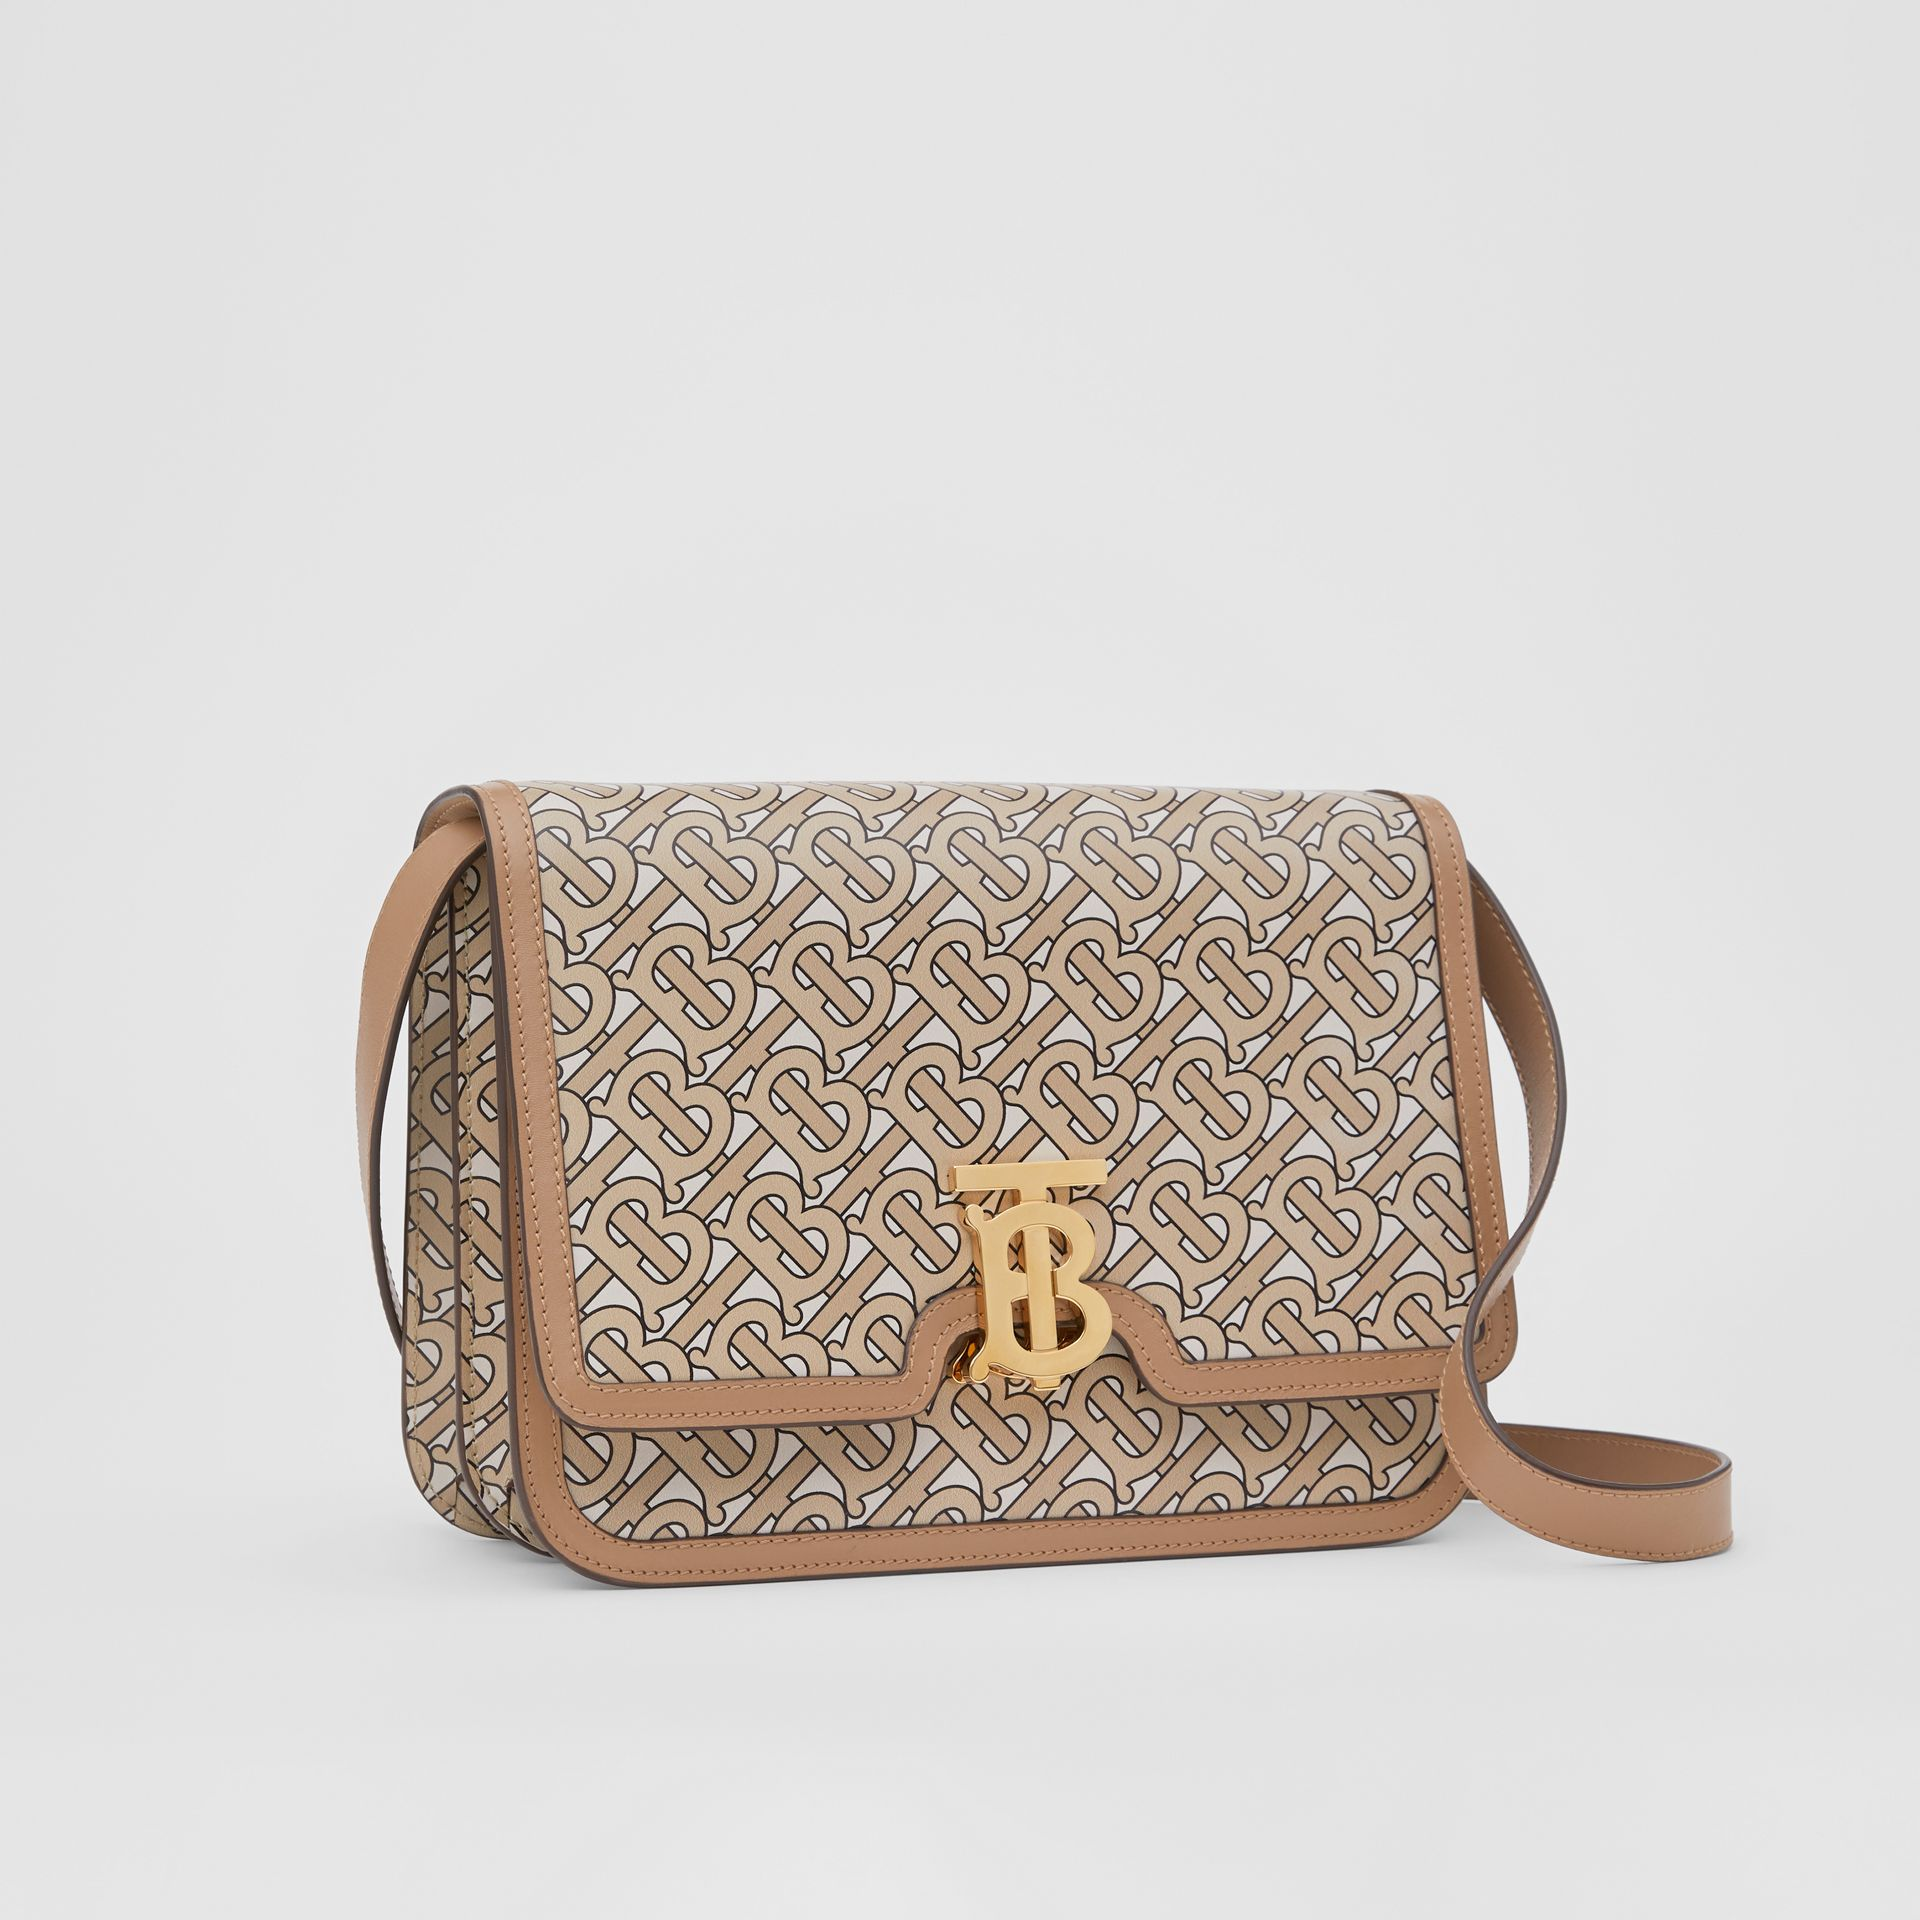 Medium Monogram Print Leather TB Bag in Beige - Women | Burberry Australia - gallery image 6